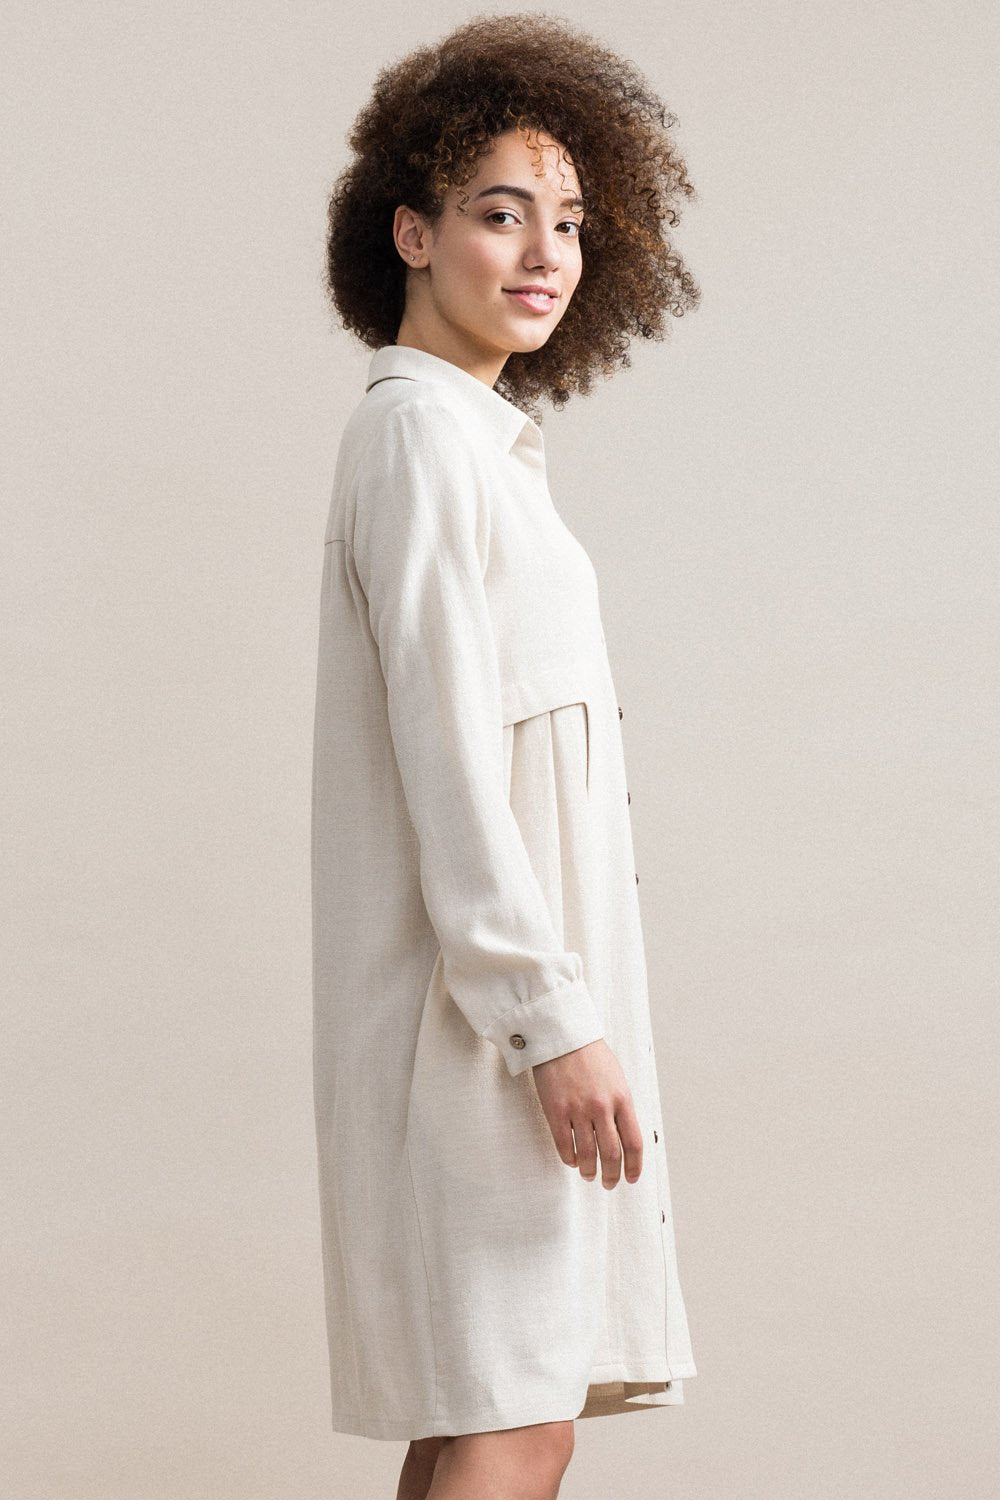 JENNIFER GLASGOW Inari Shirt Dress in Natural (side view, detail) FW2020/2021